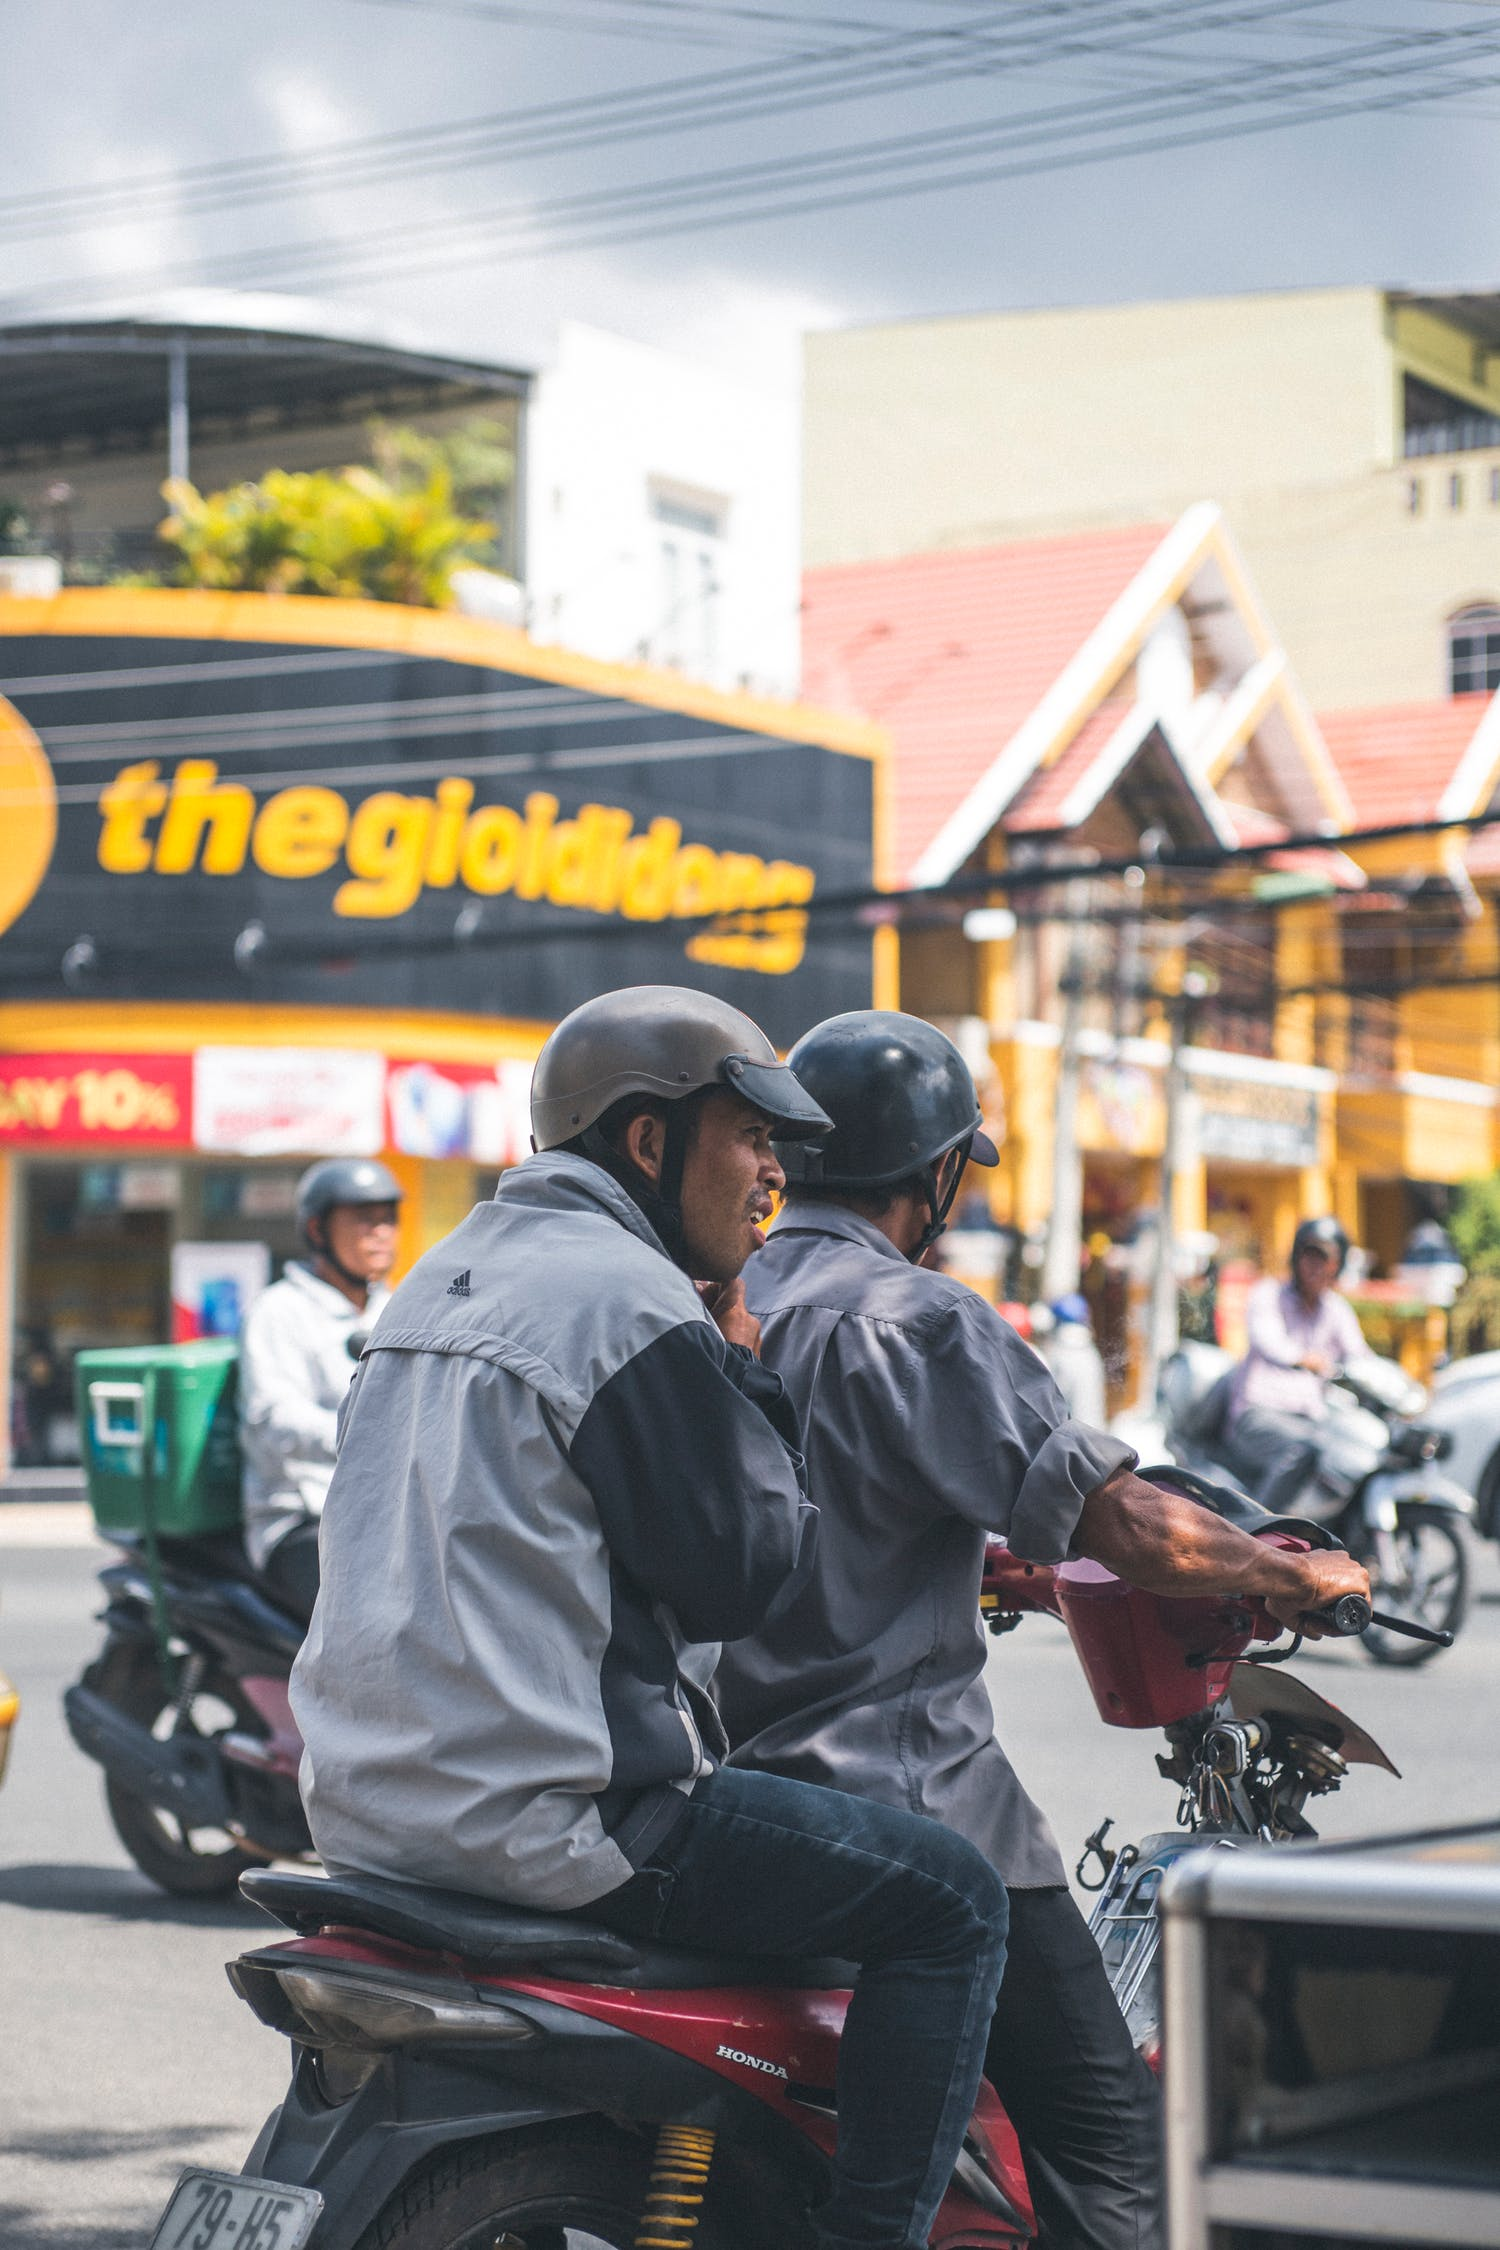 Two Men Riding on Motorcycle